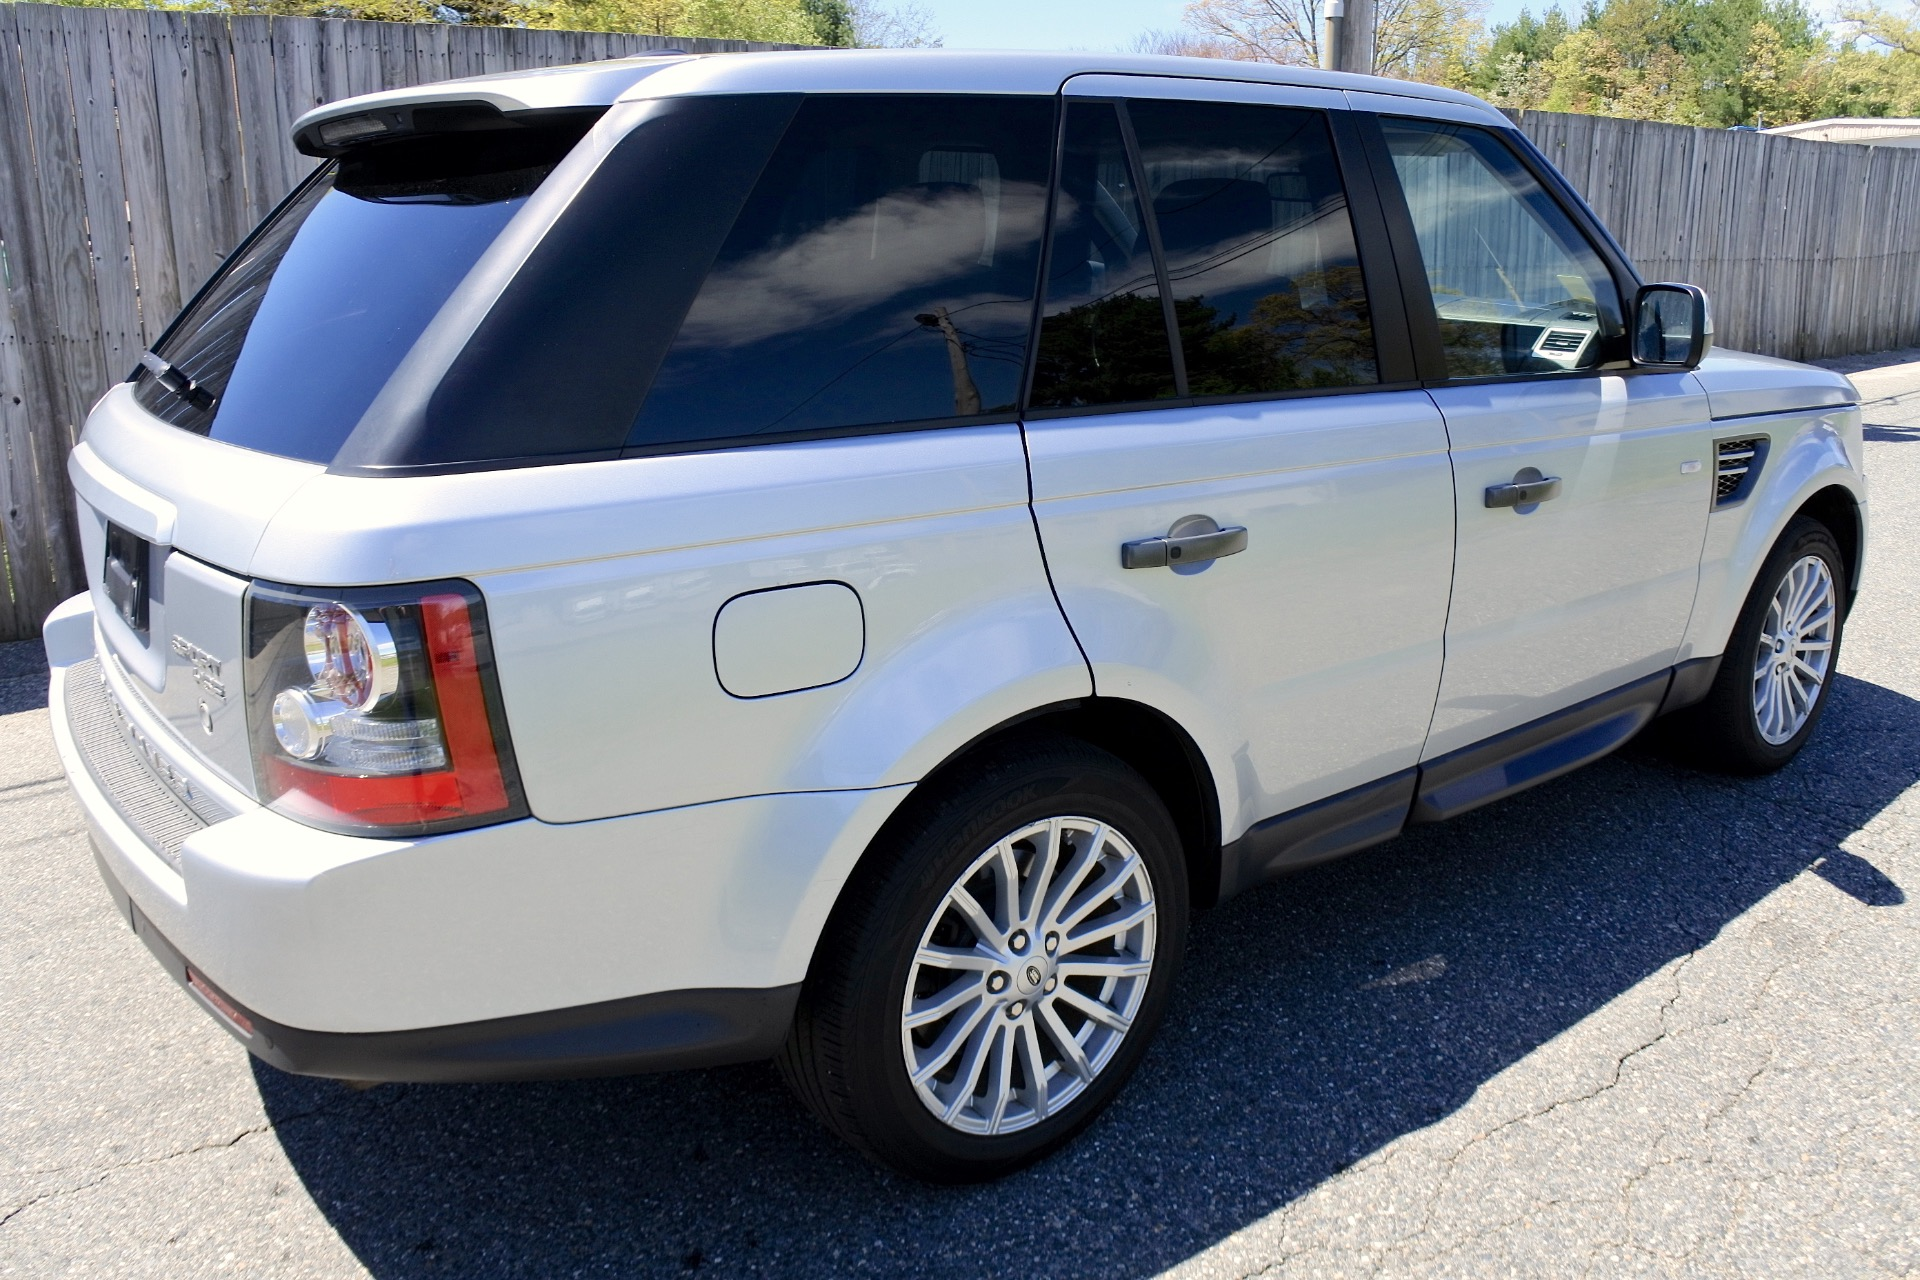 Used 2011 Land Rover Range Rover Sport HSE Used 2011 Land Rover Range Rover Sport HSE for sale  at Metro West Motorcars LLC in Shrewsbury MA 7